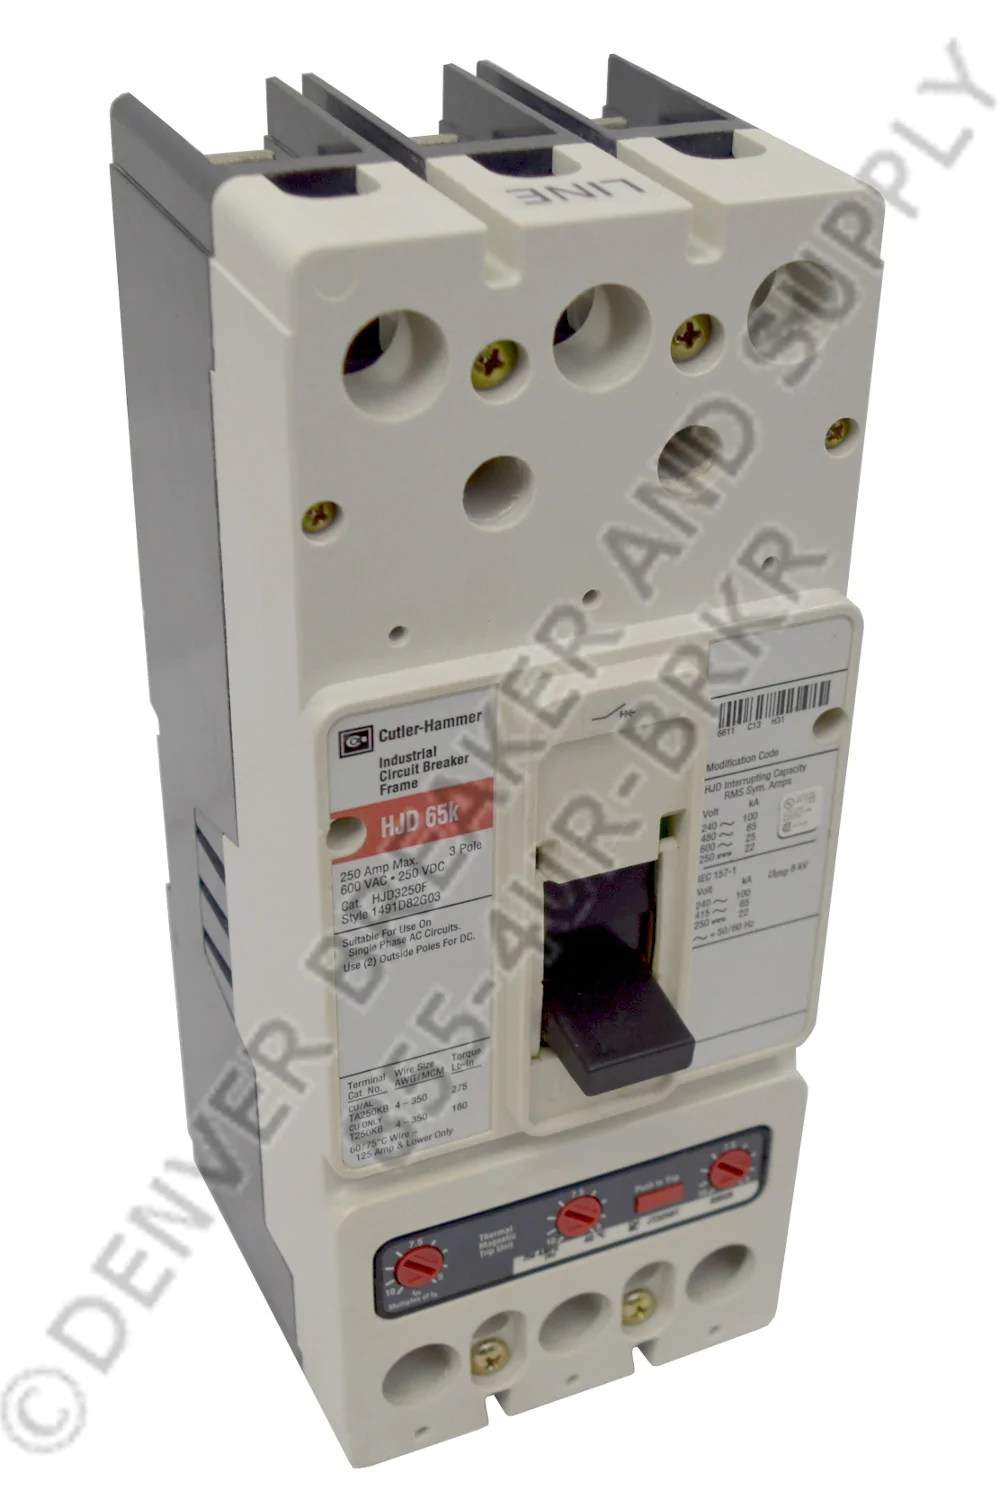 hight resolution of cutler hammer hjddc3100 circuit breaker